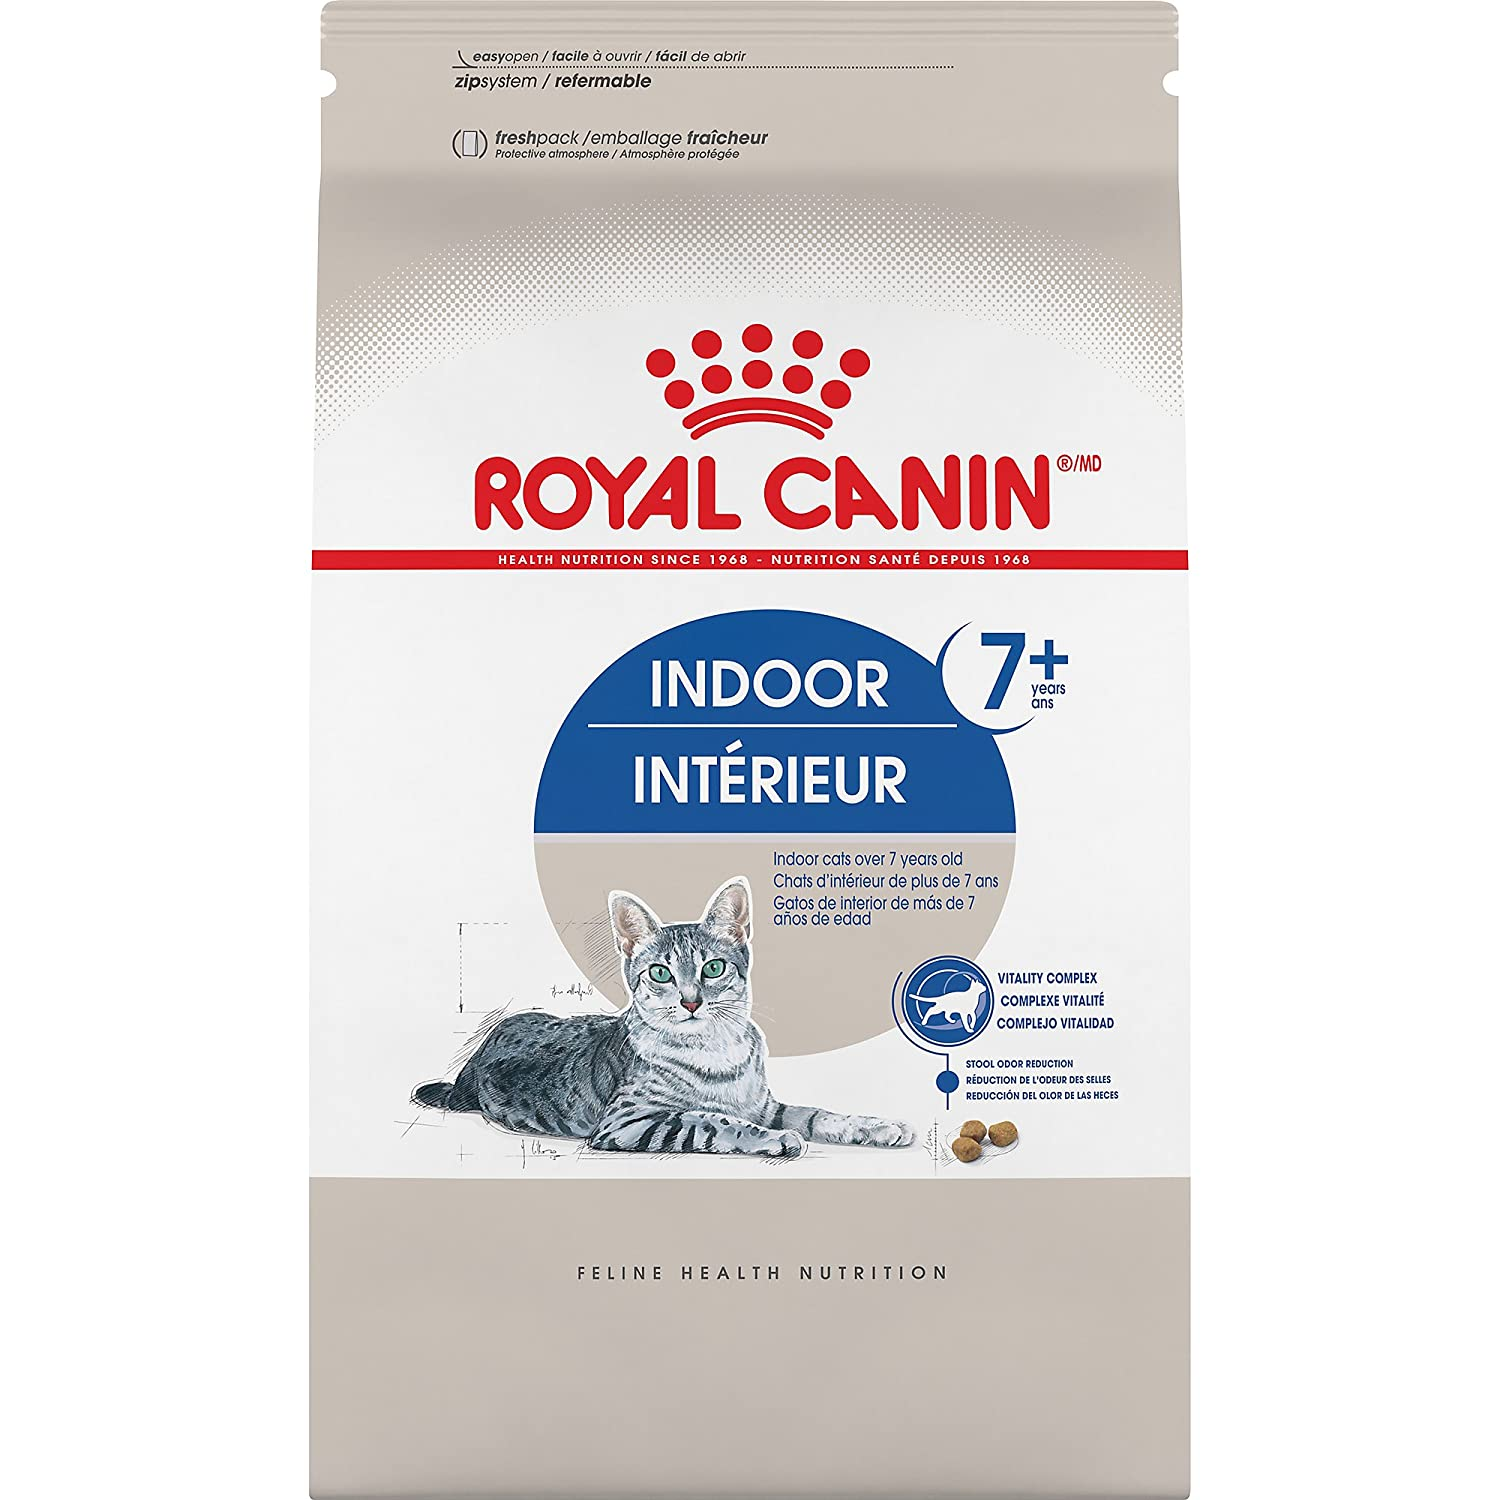 5.5-Pound Royal Canin Feline Health Nutrition Indoor 7+ Dry Adult Cat Food